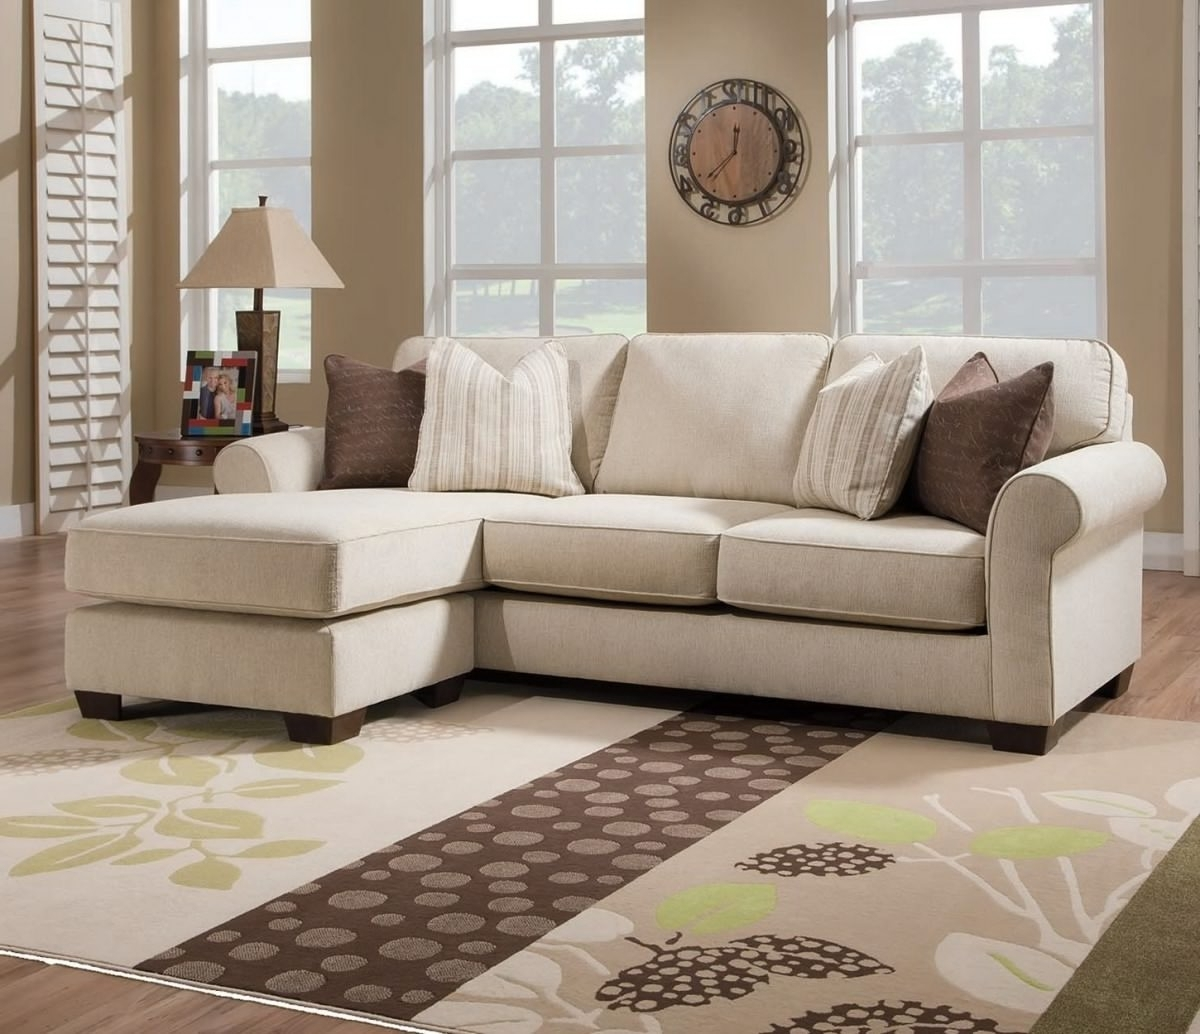 Sectional Sofa Design: Sectional Sofas Small Spaces Armless In Favorite Inexpensive Sectional Sofas For Small Spaces (View 14 of 15)